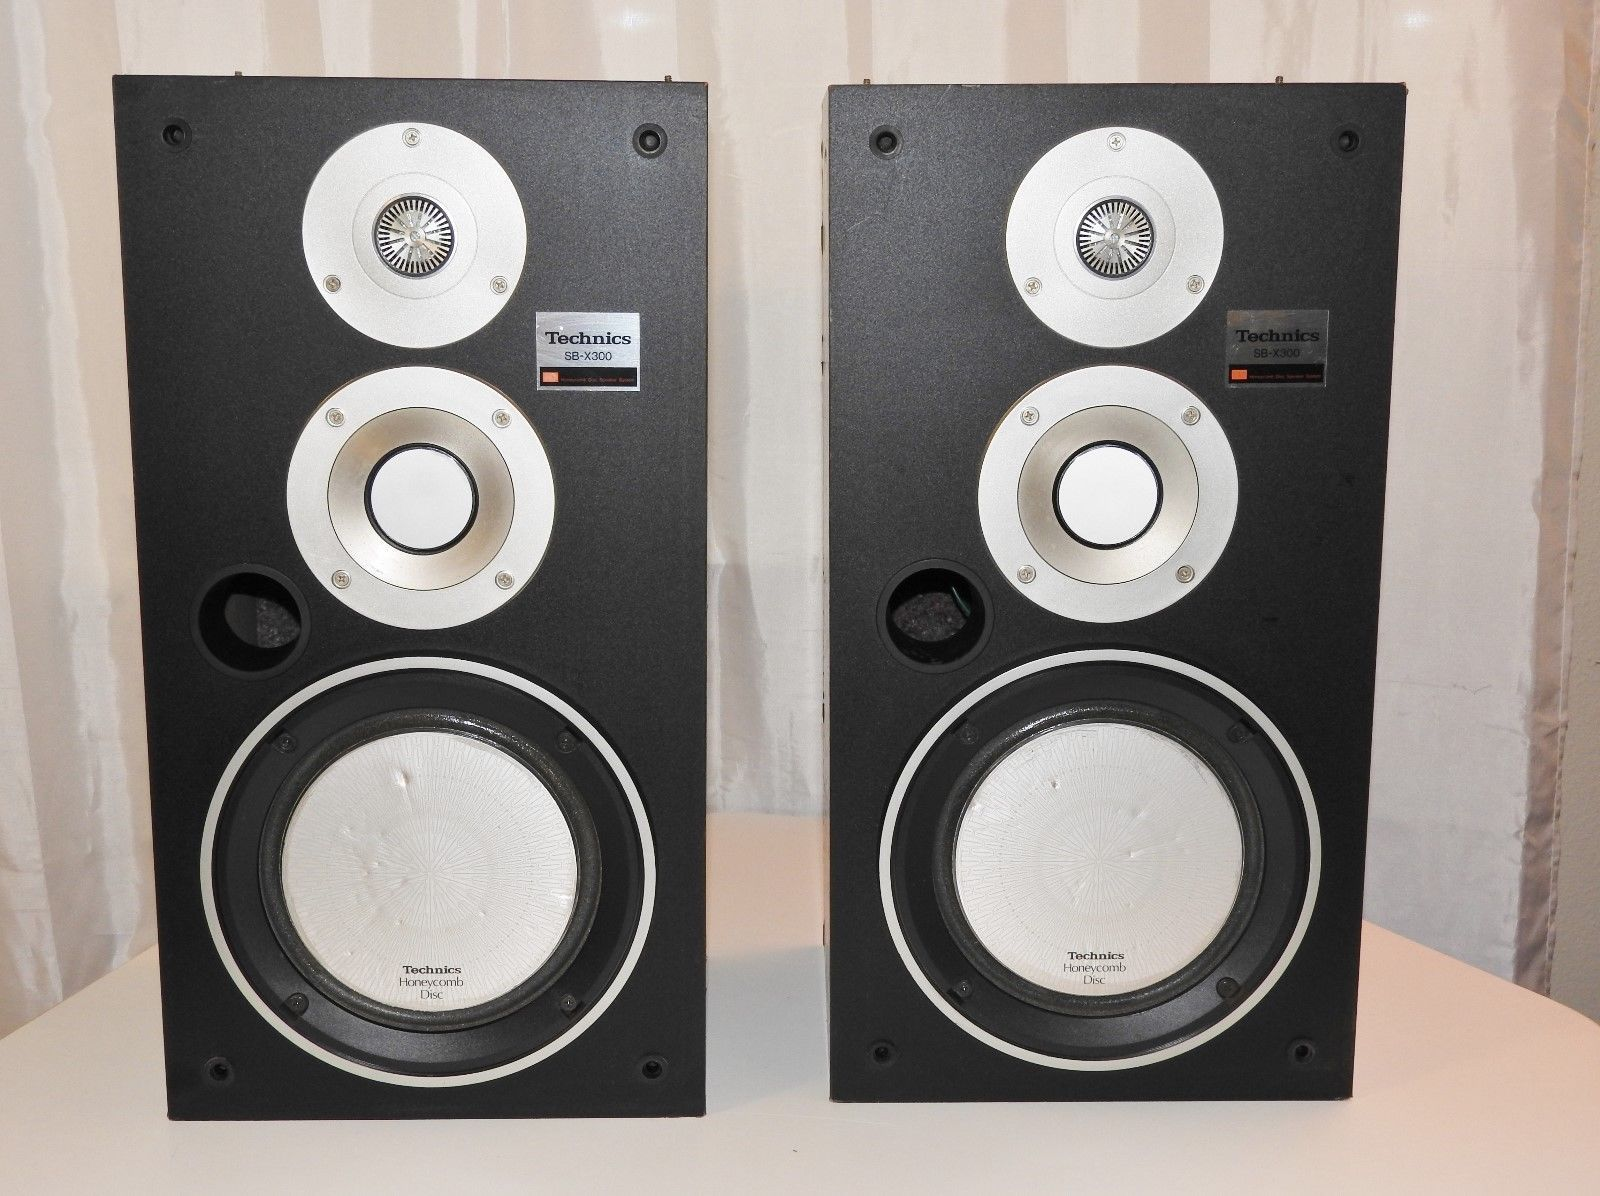 Technics Sb X300 Speakers Honeycomb Disc Pair Of 3 Way Audiophile Super Rare Follow The Link For Once Of A Kind Ultra Vintage Speakers Speaker Usb Speakers